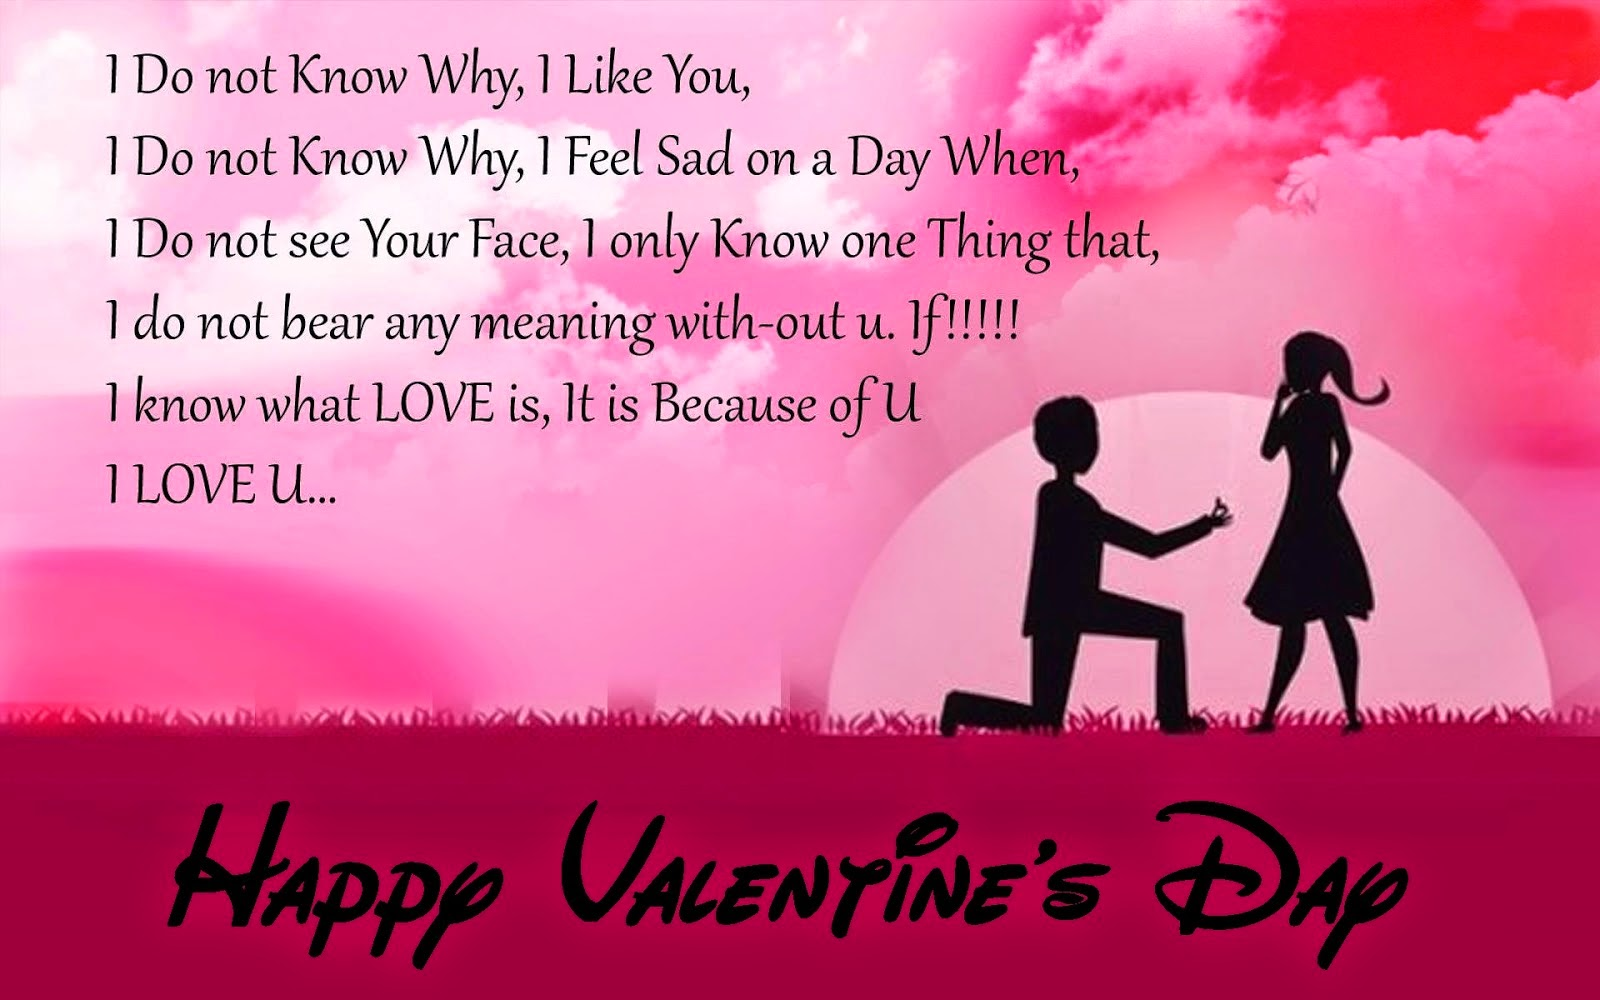 Romantic Valentines Day Card Messages For Your Wife With Images